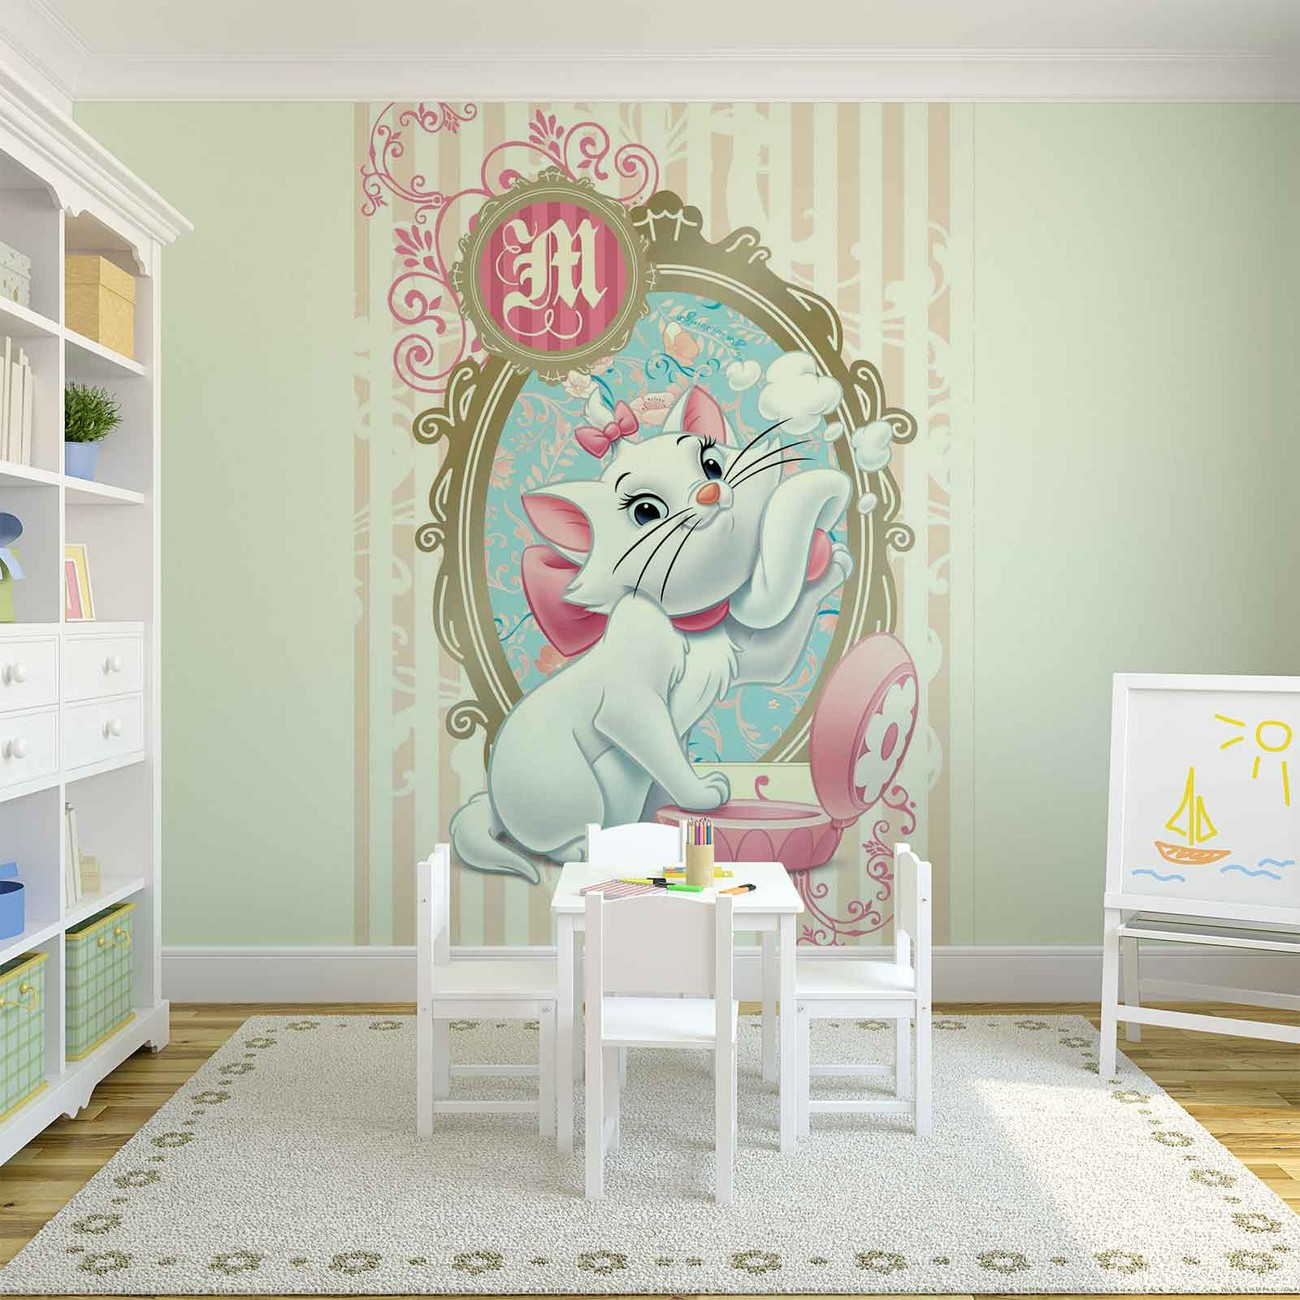 Disney aristocats marie wall paper mural buy at europosters for Disney mural wallpaper